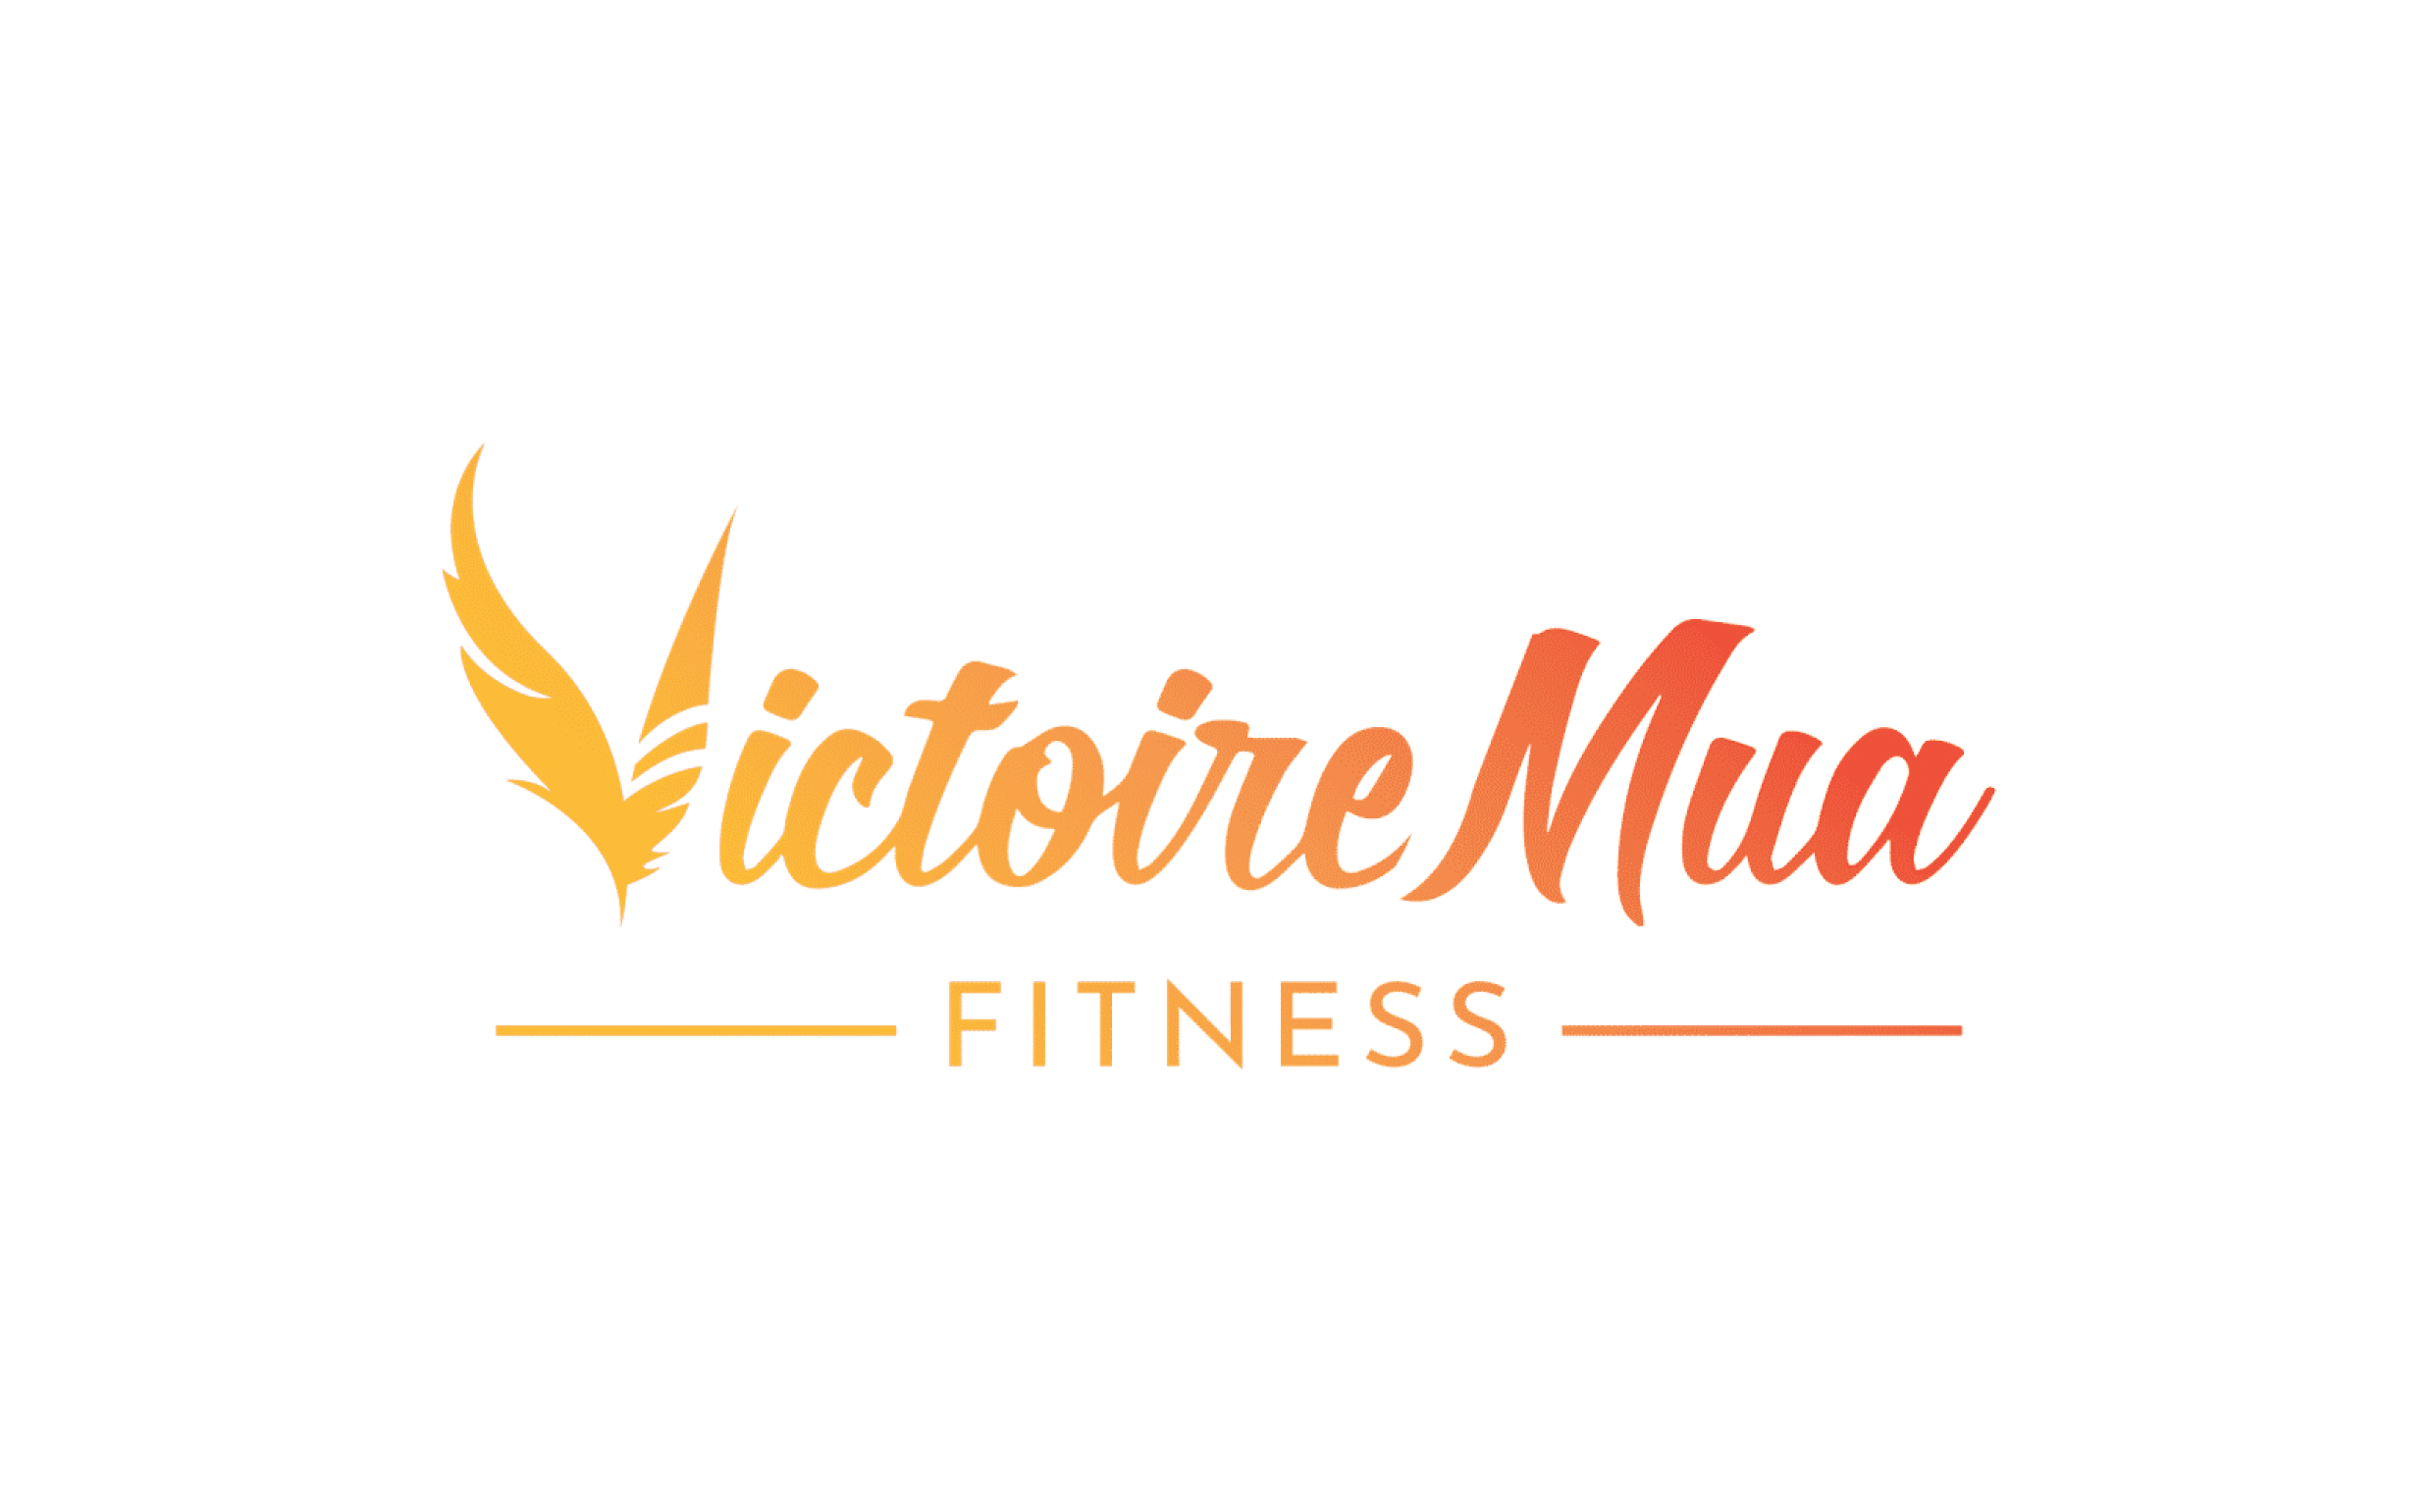 Fitness & LifeStyle - Victoire